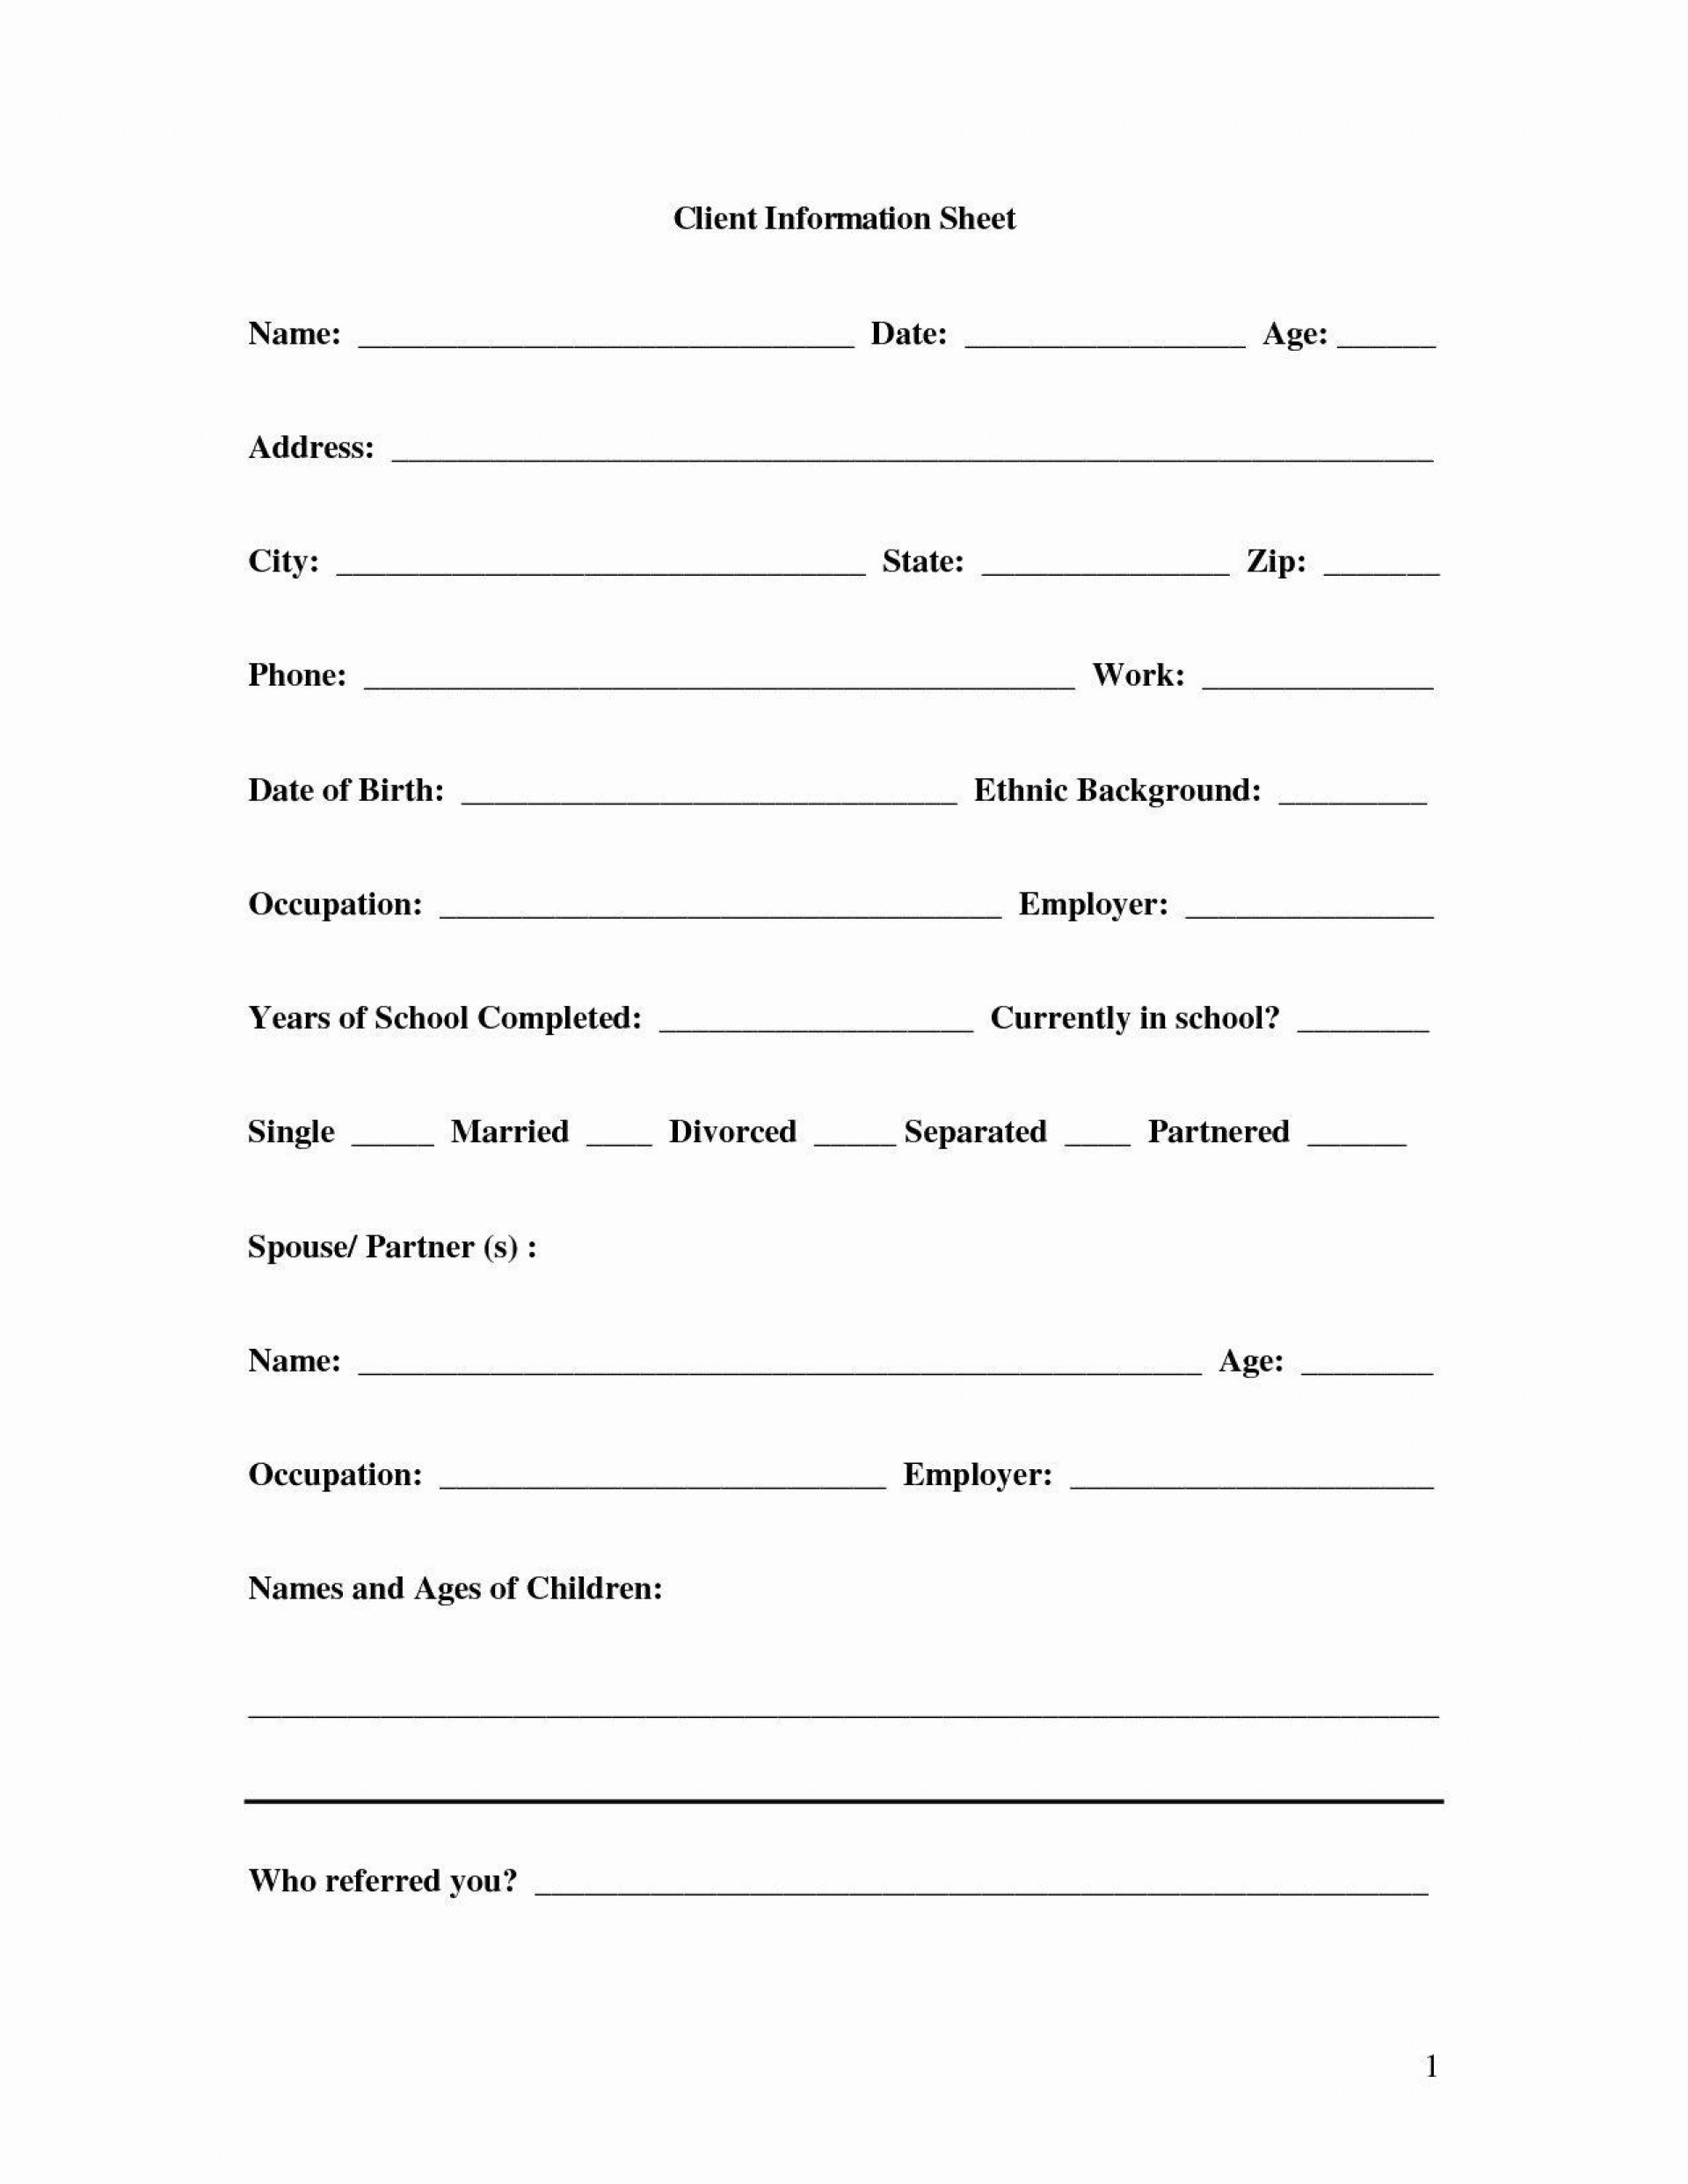 003 Impressive New Client Form Template Highest Quality  Accounting Free Customer Pdf1920